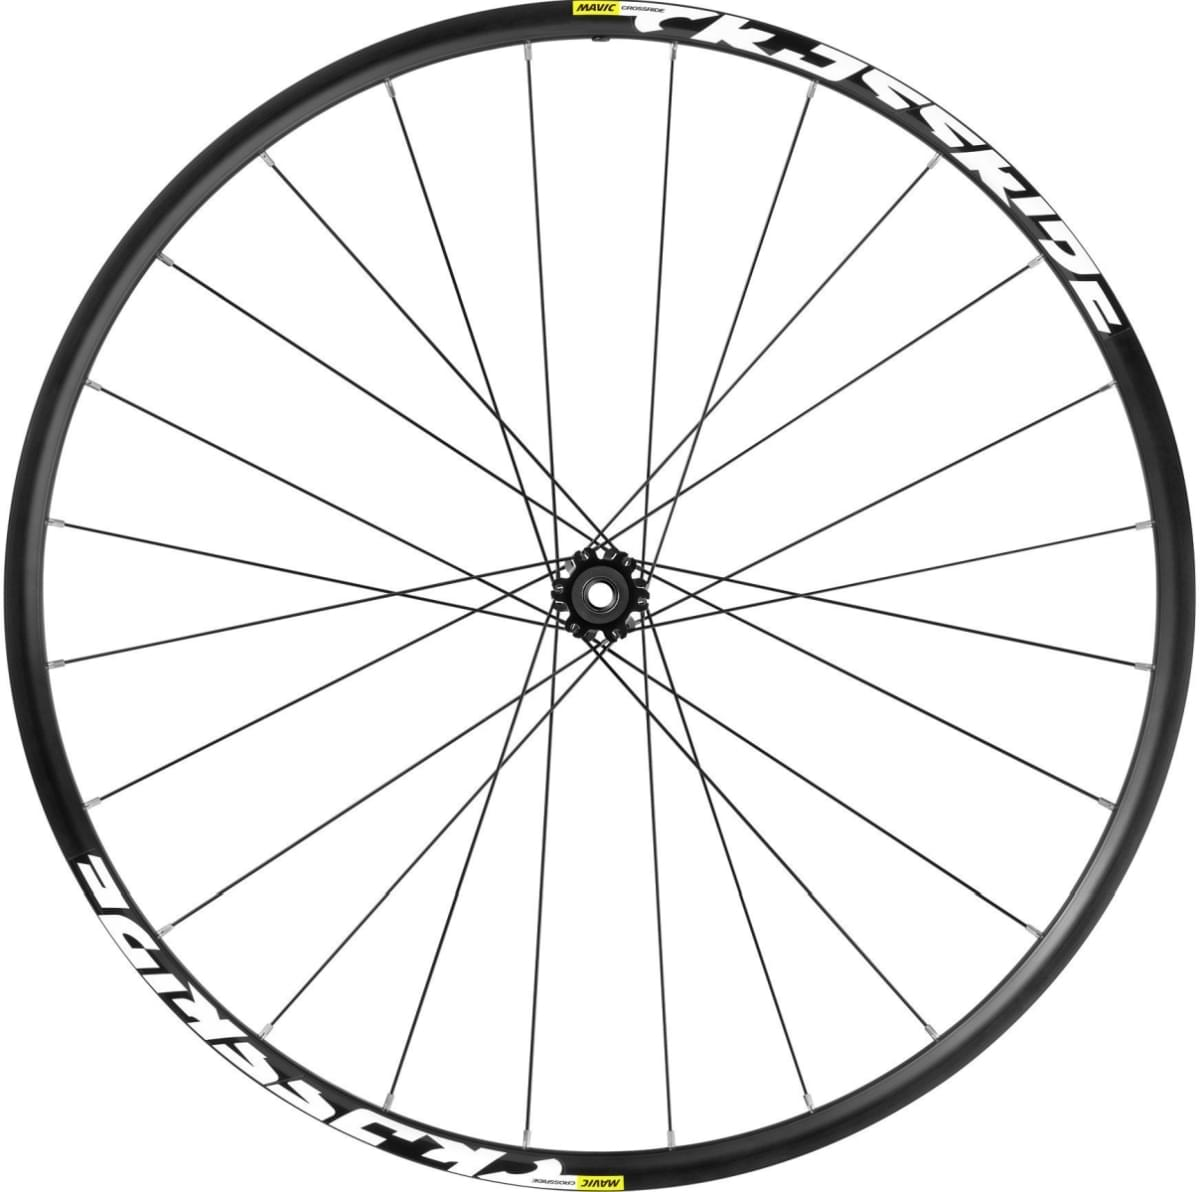 Mavic Crossride FTS-X 16 26 15/9mm Front uni